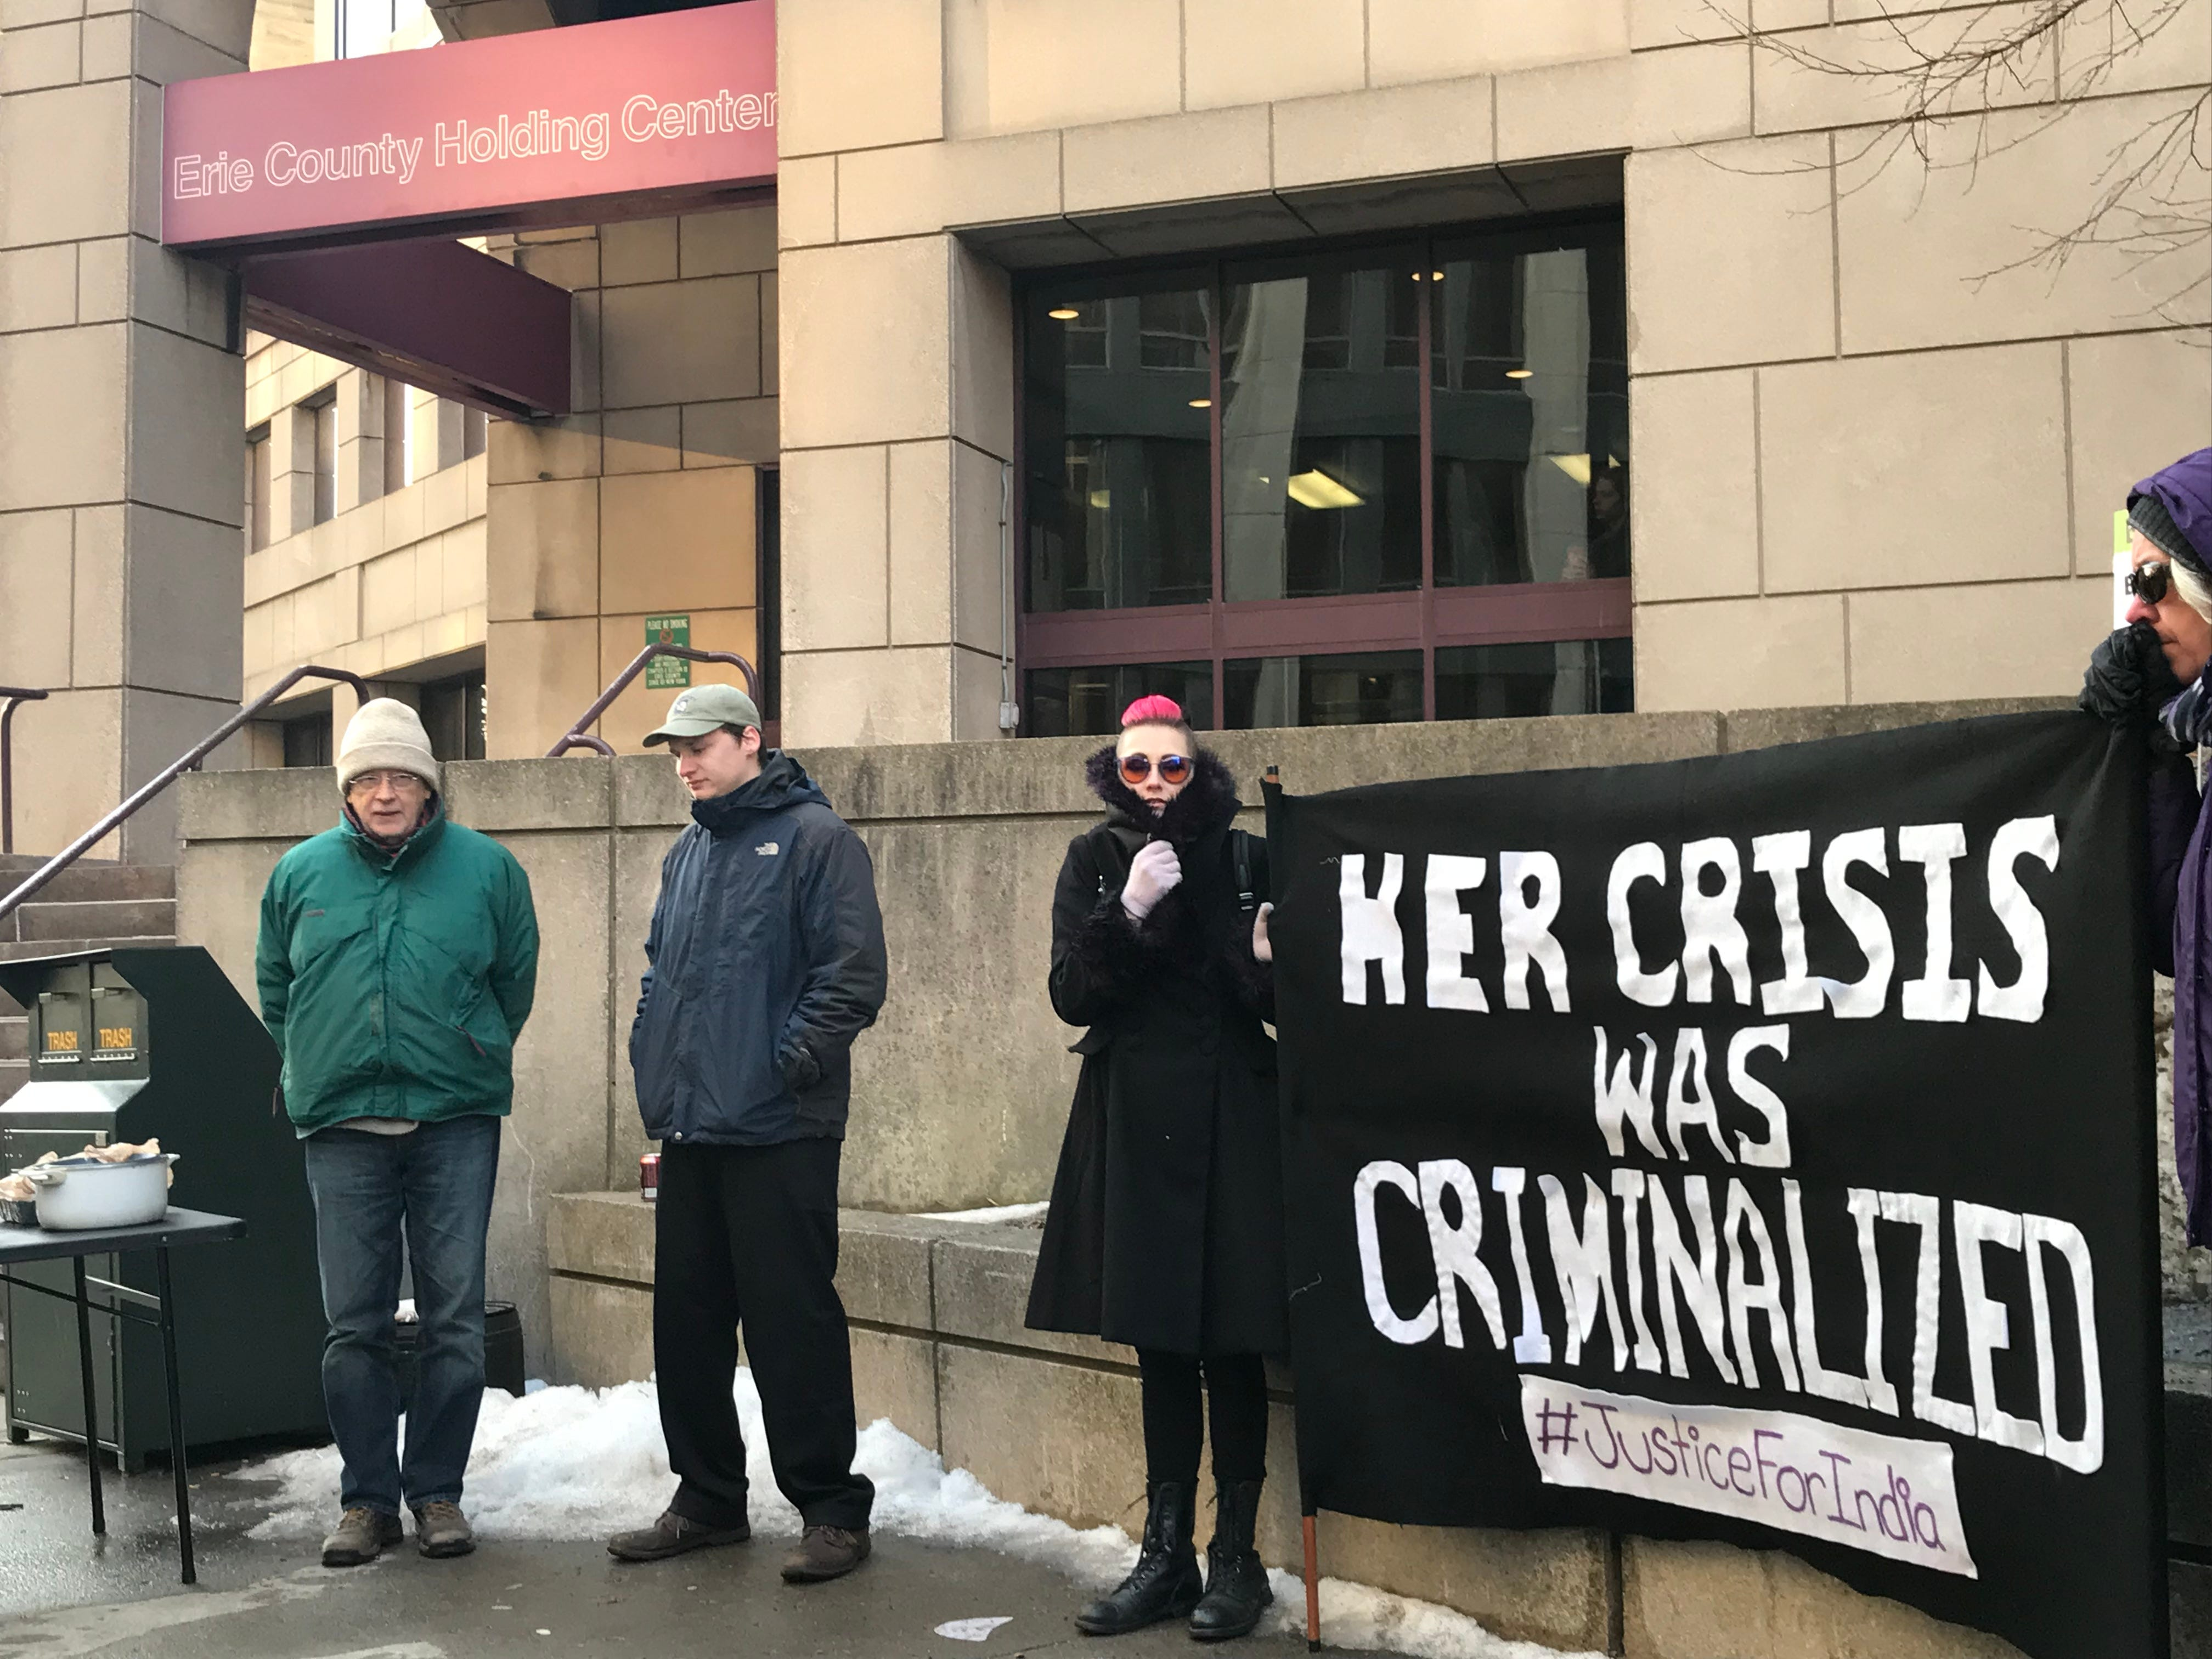 Protesters rally in front of the Erie County Medical Center on Feb. 21, 2019 in honor of India Cummings.